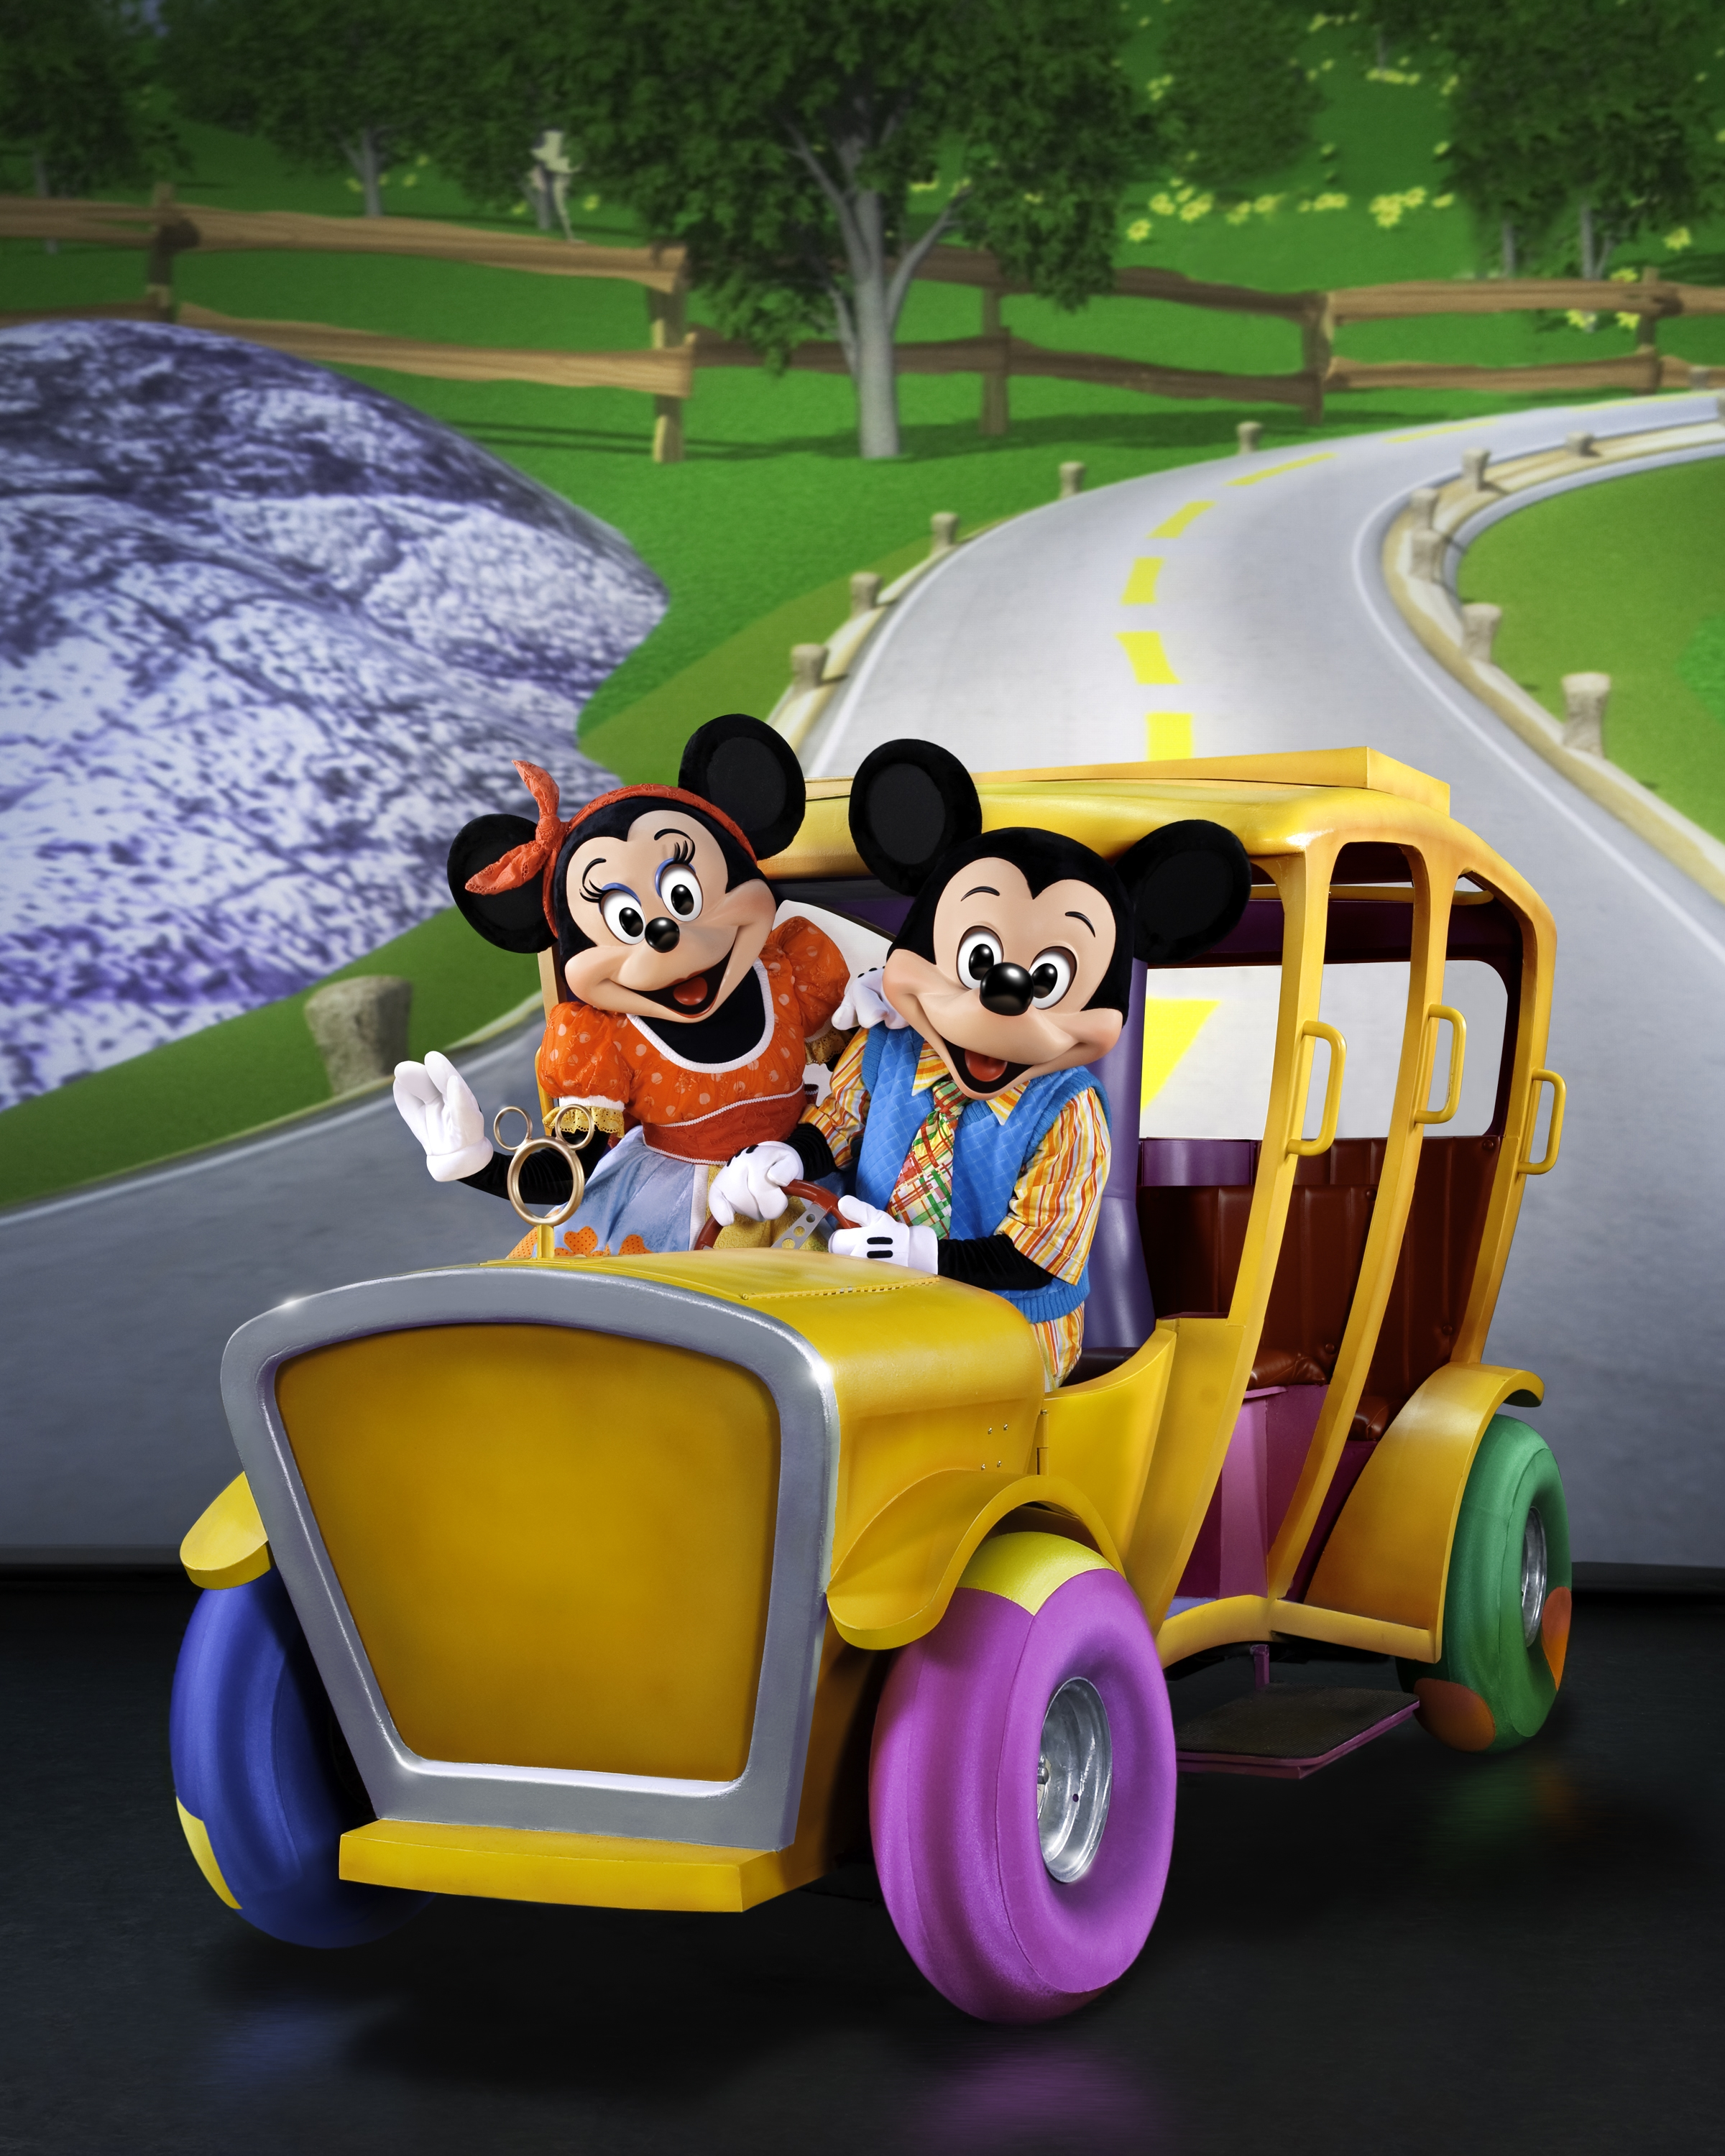 Mickey and Minnie set of on a hilarious adventure!